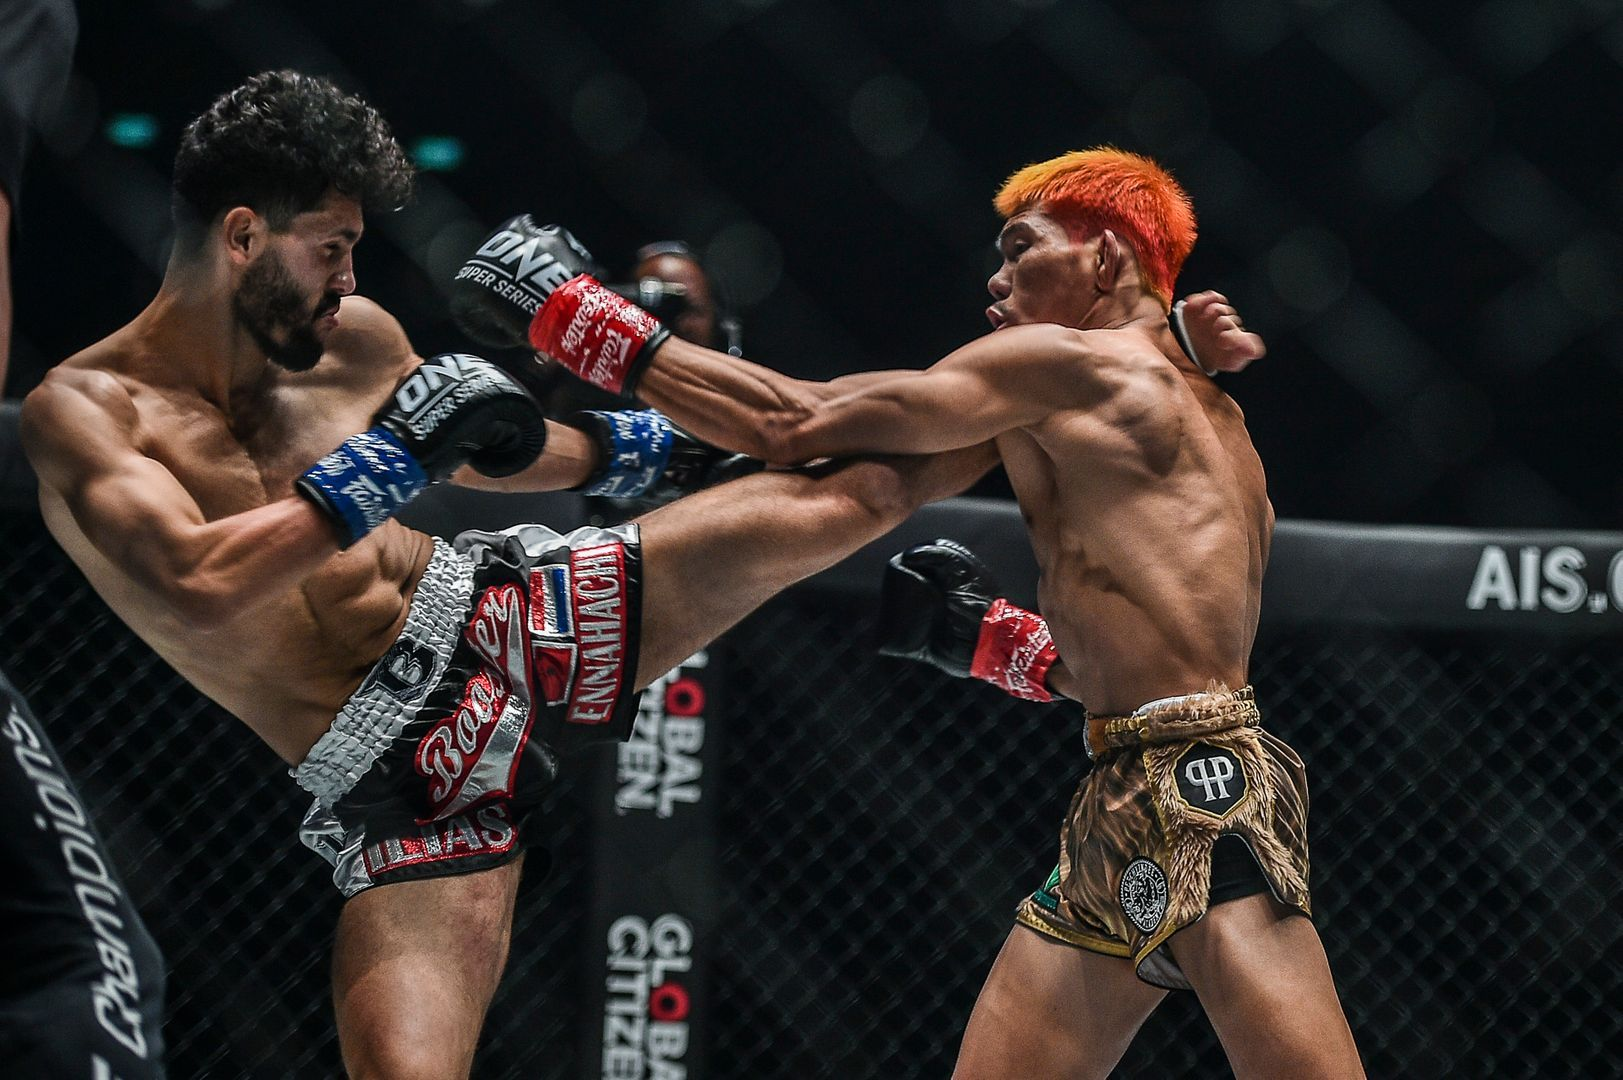 Ilias Ennahachi defeats Petchdam Petchyindee Academy by knockout at ONE: DREAMS OF GOLD